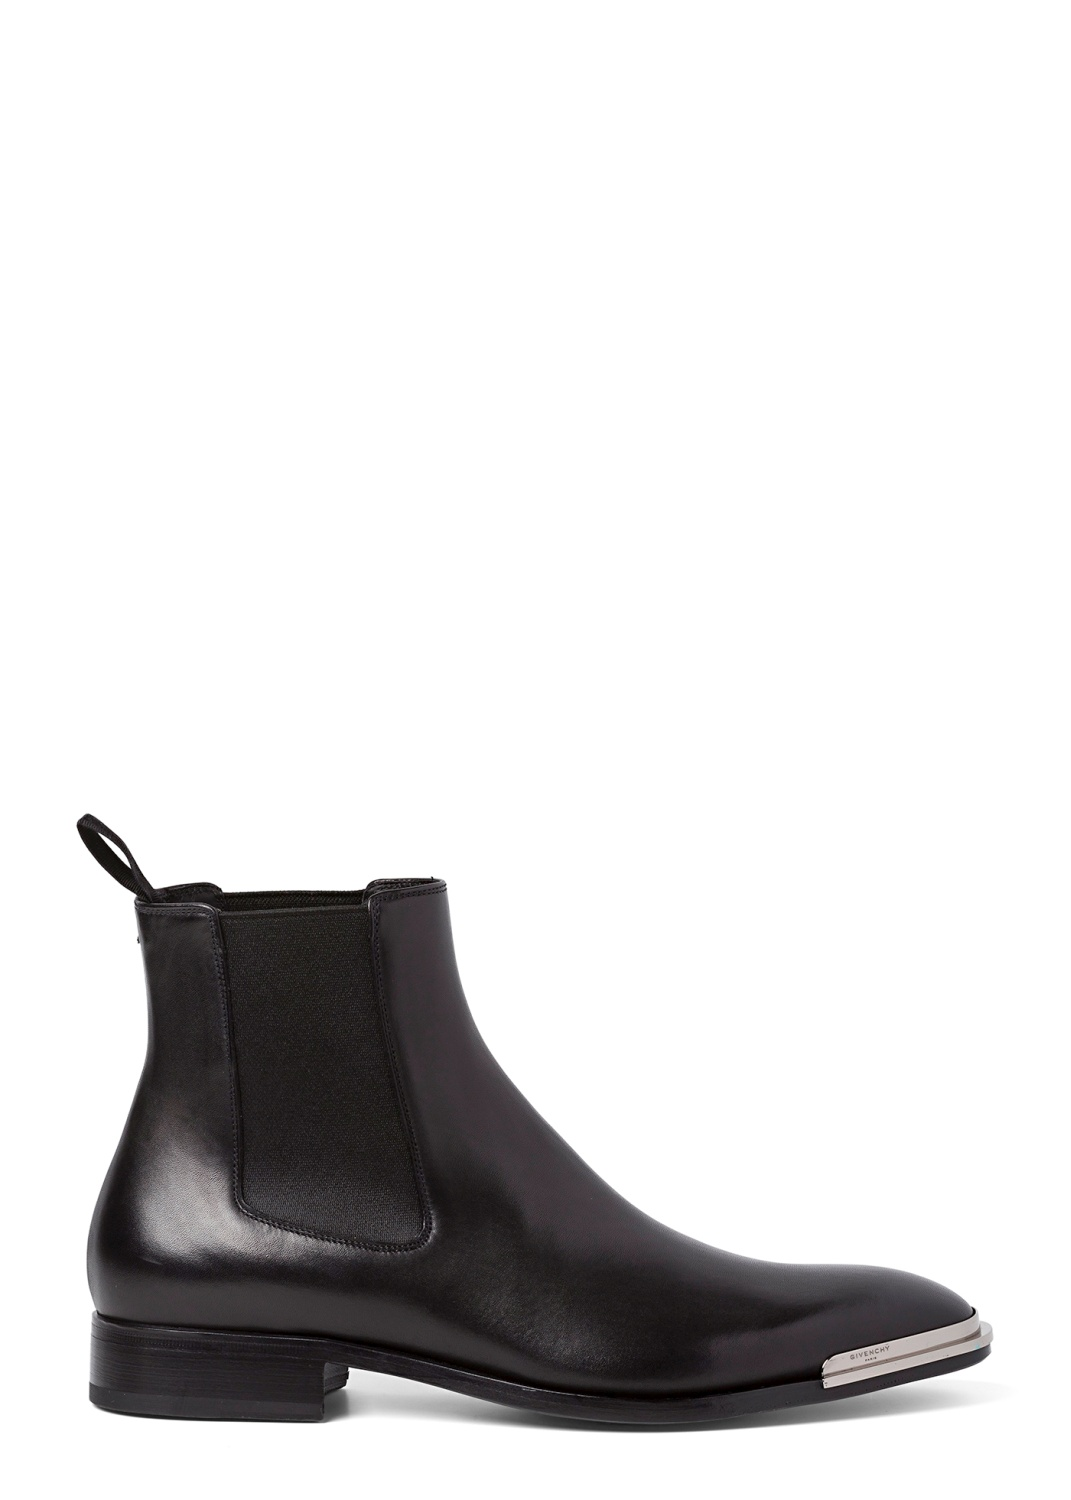 CLASSIC CHELSEA BOOT image number 0